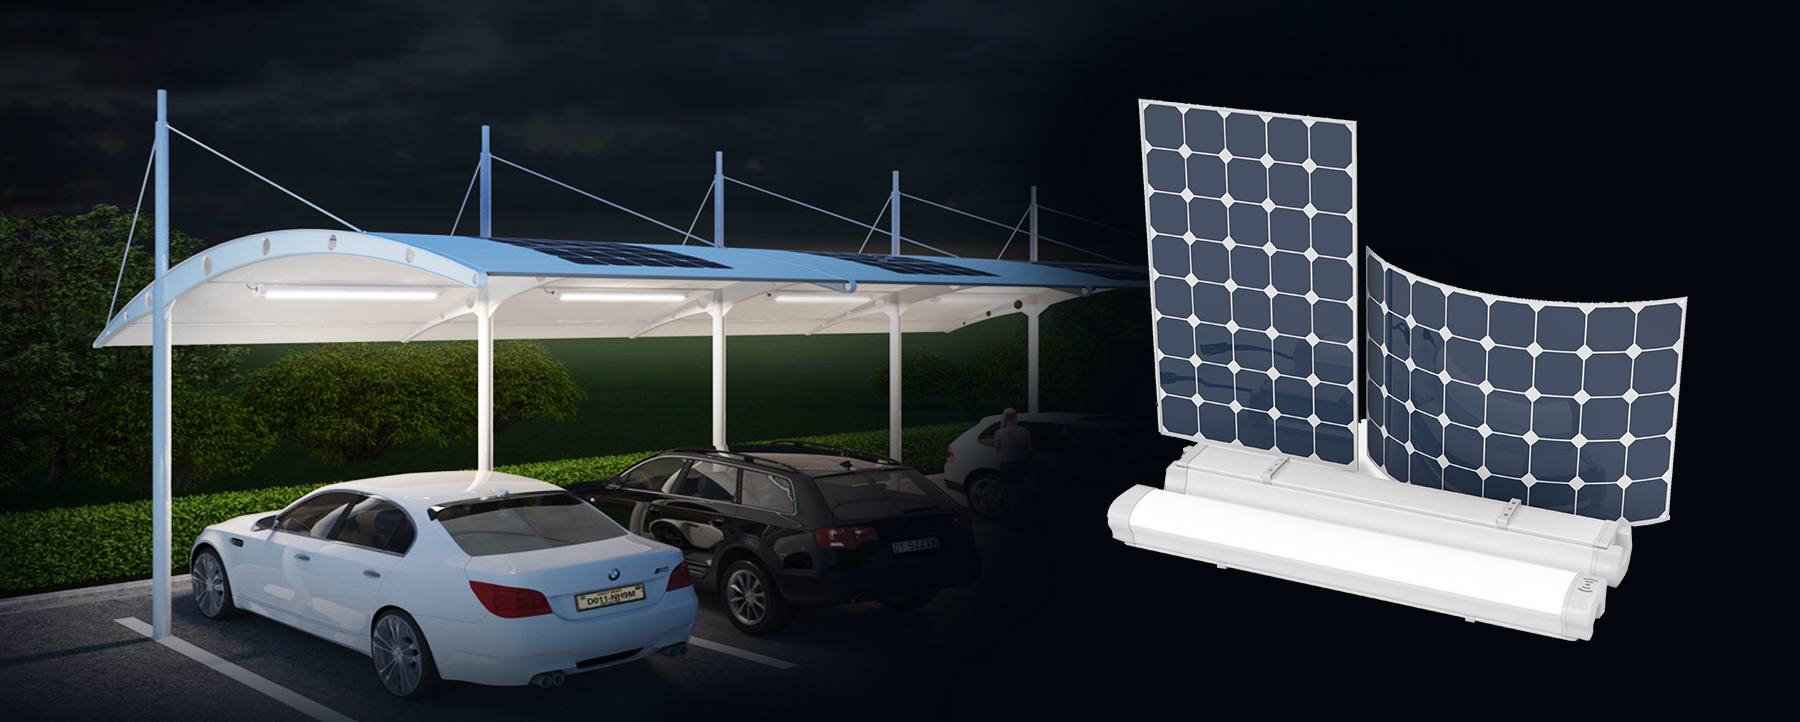 Truelite Solar  Carport  LED Light